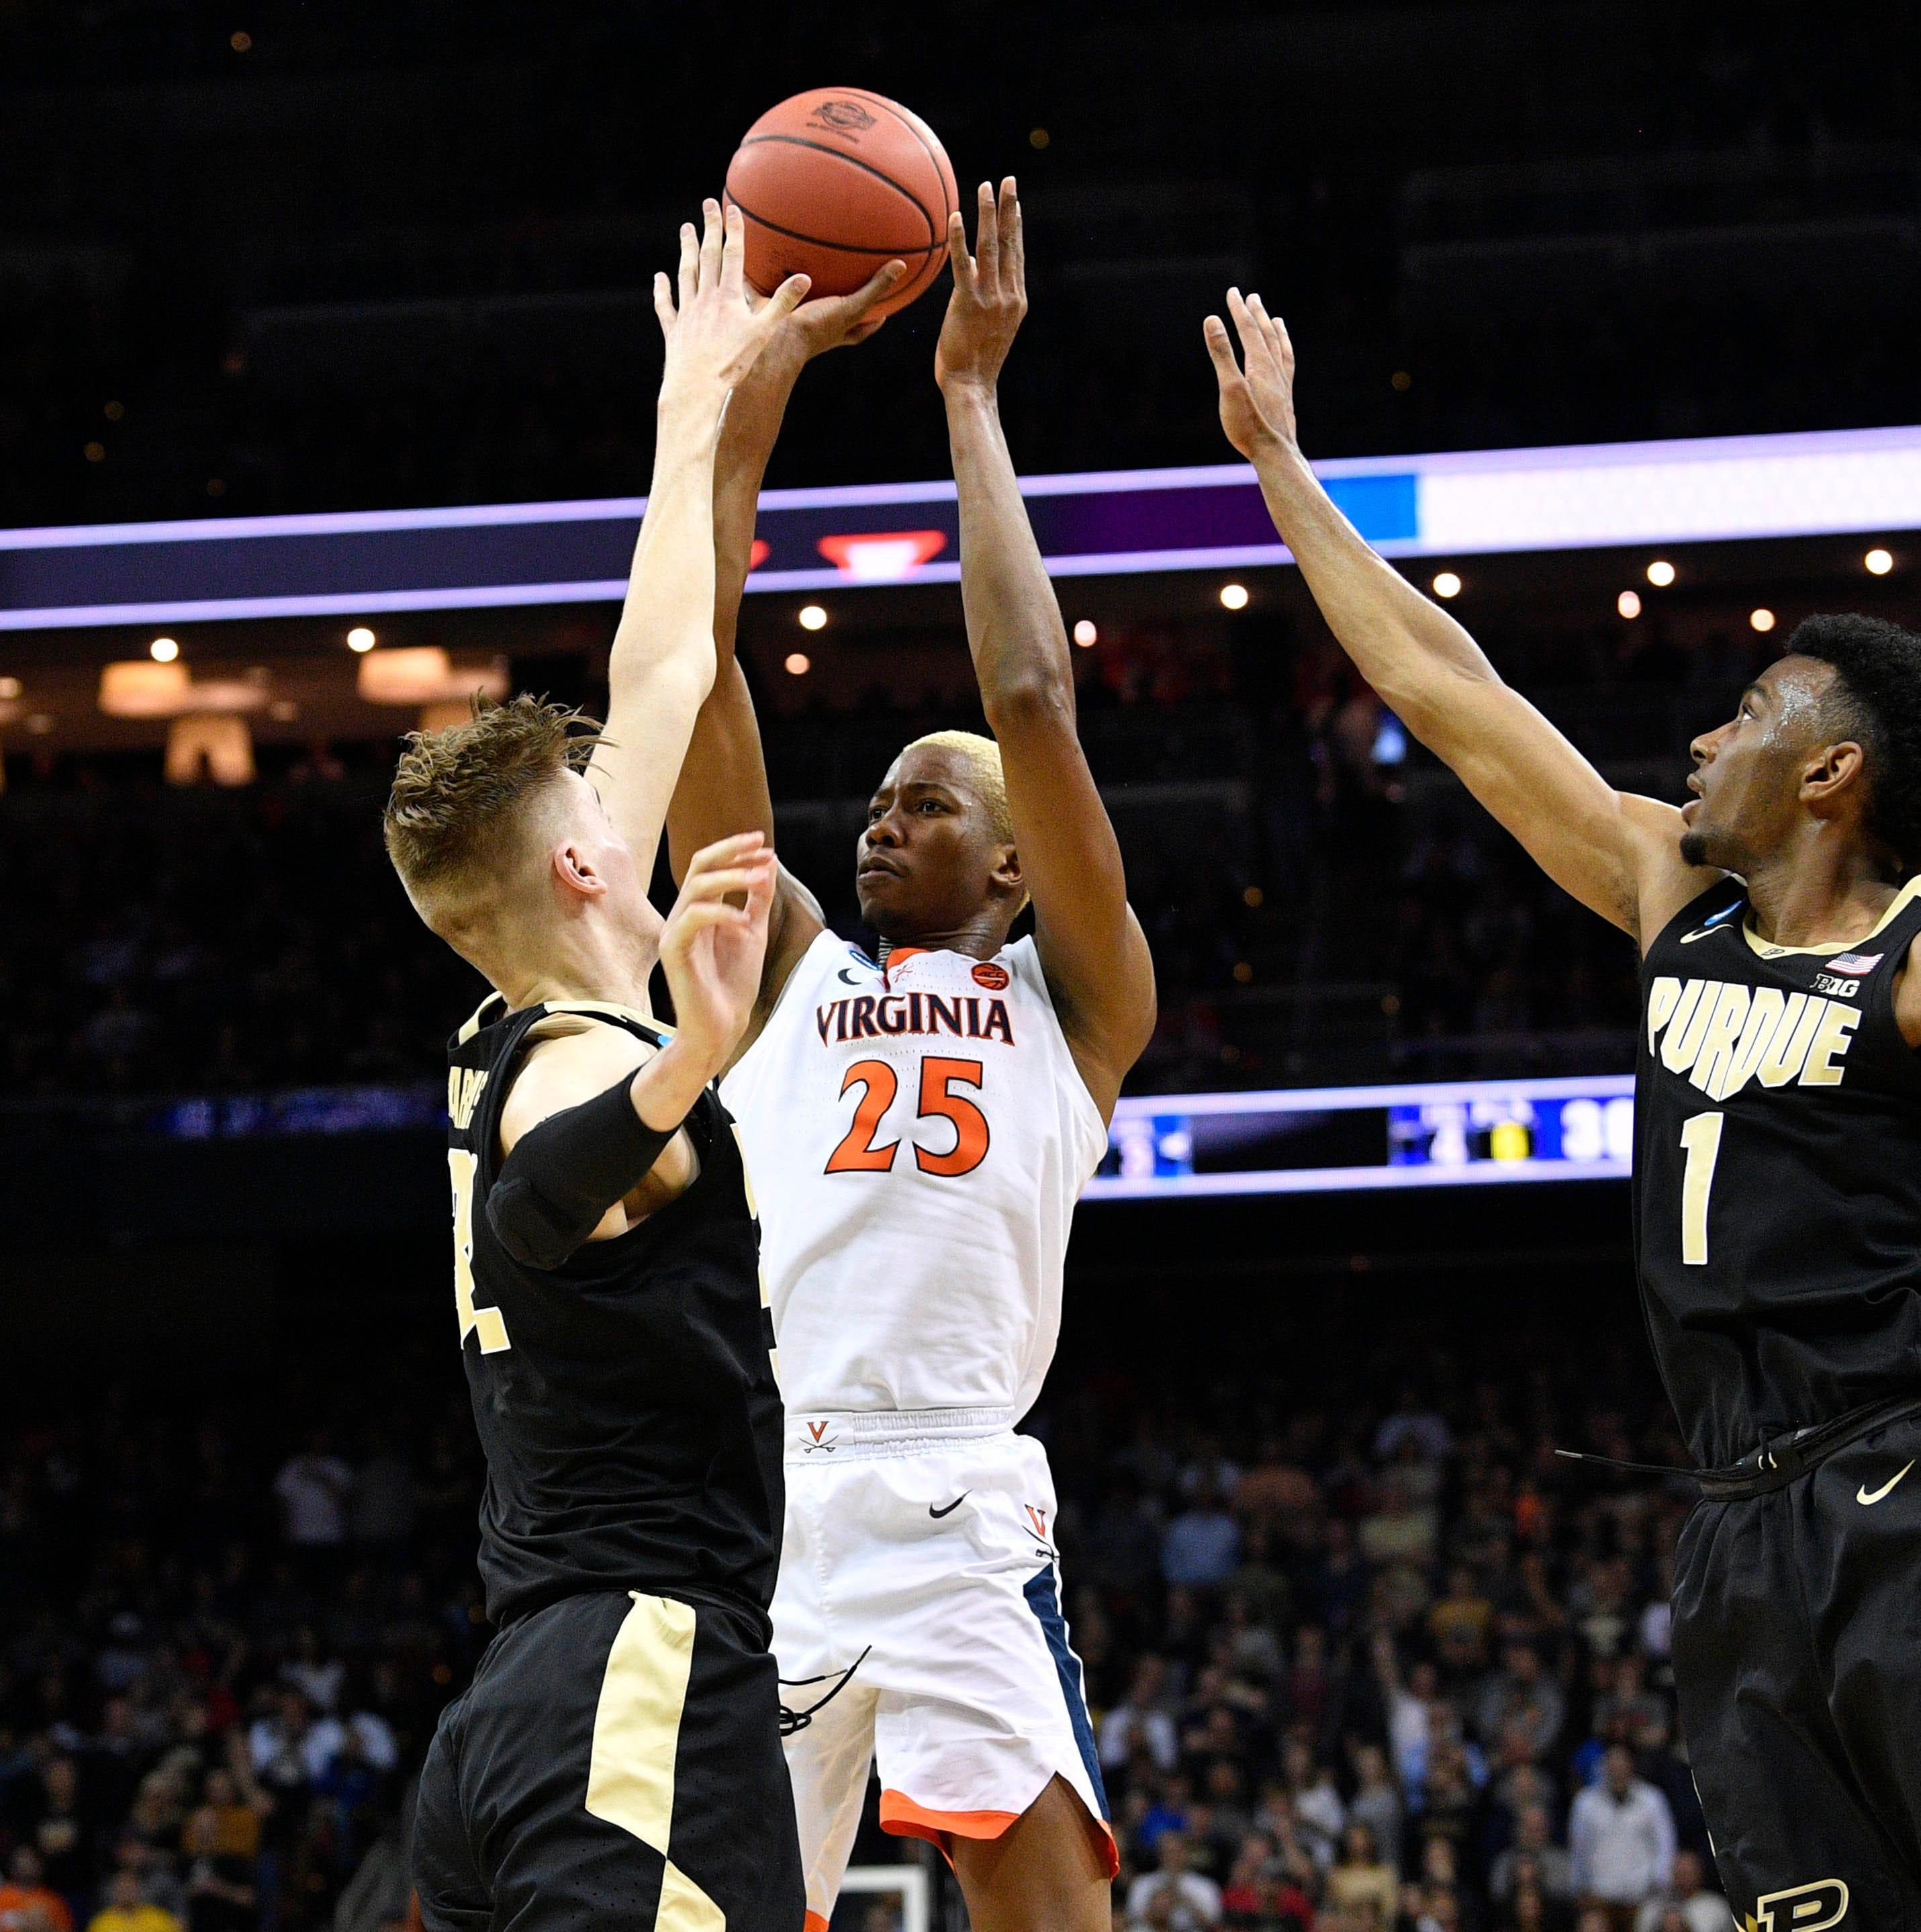 March Madness 2019: See Virginia's Mamadi Diakite buzzer beater to force Purdue to OT